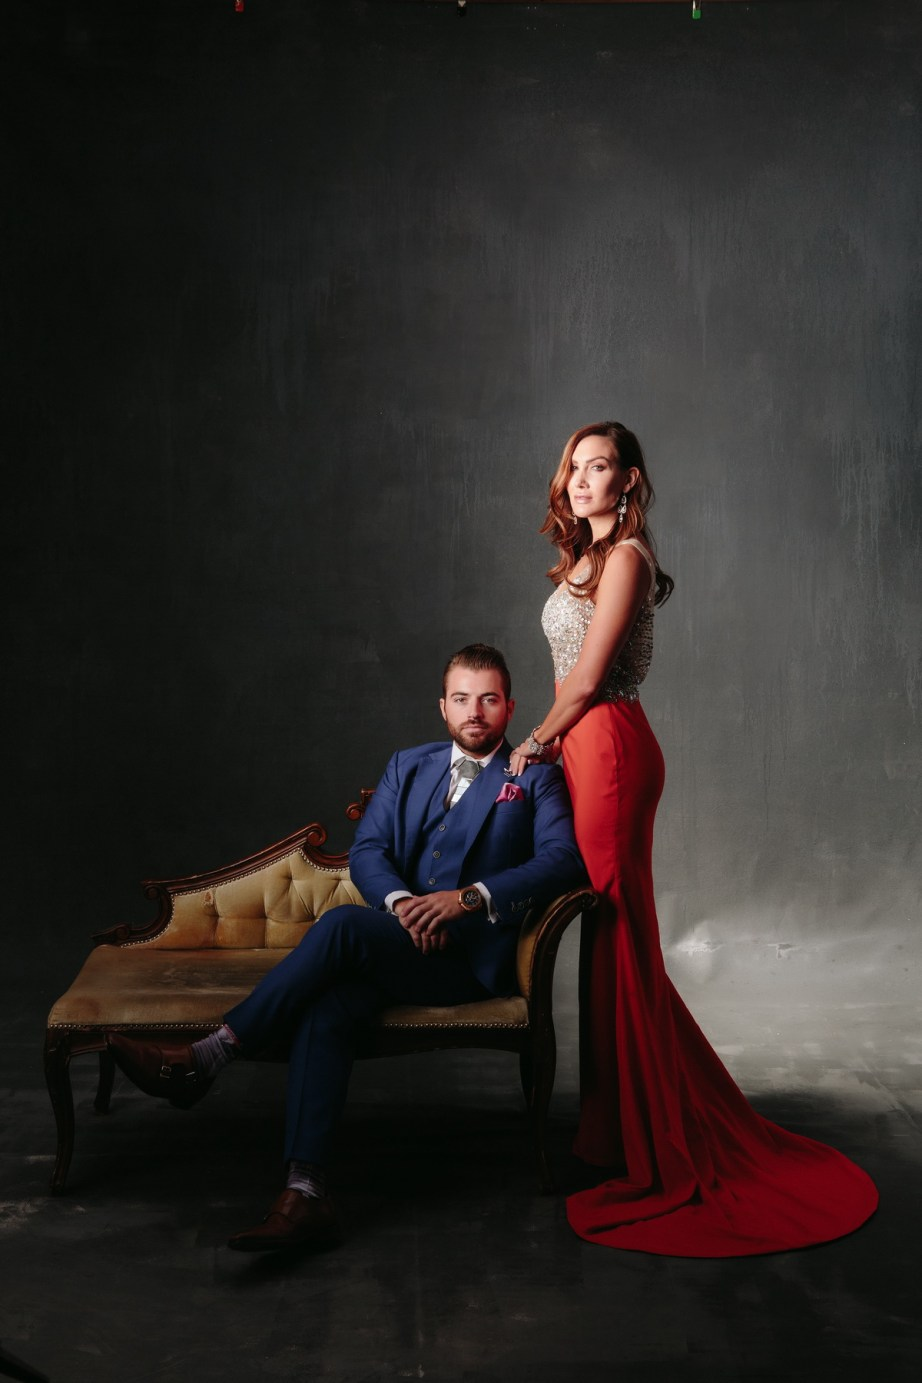 Engagement Photos In The Studio The Best Location Choice